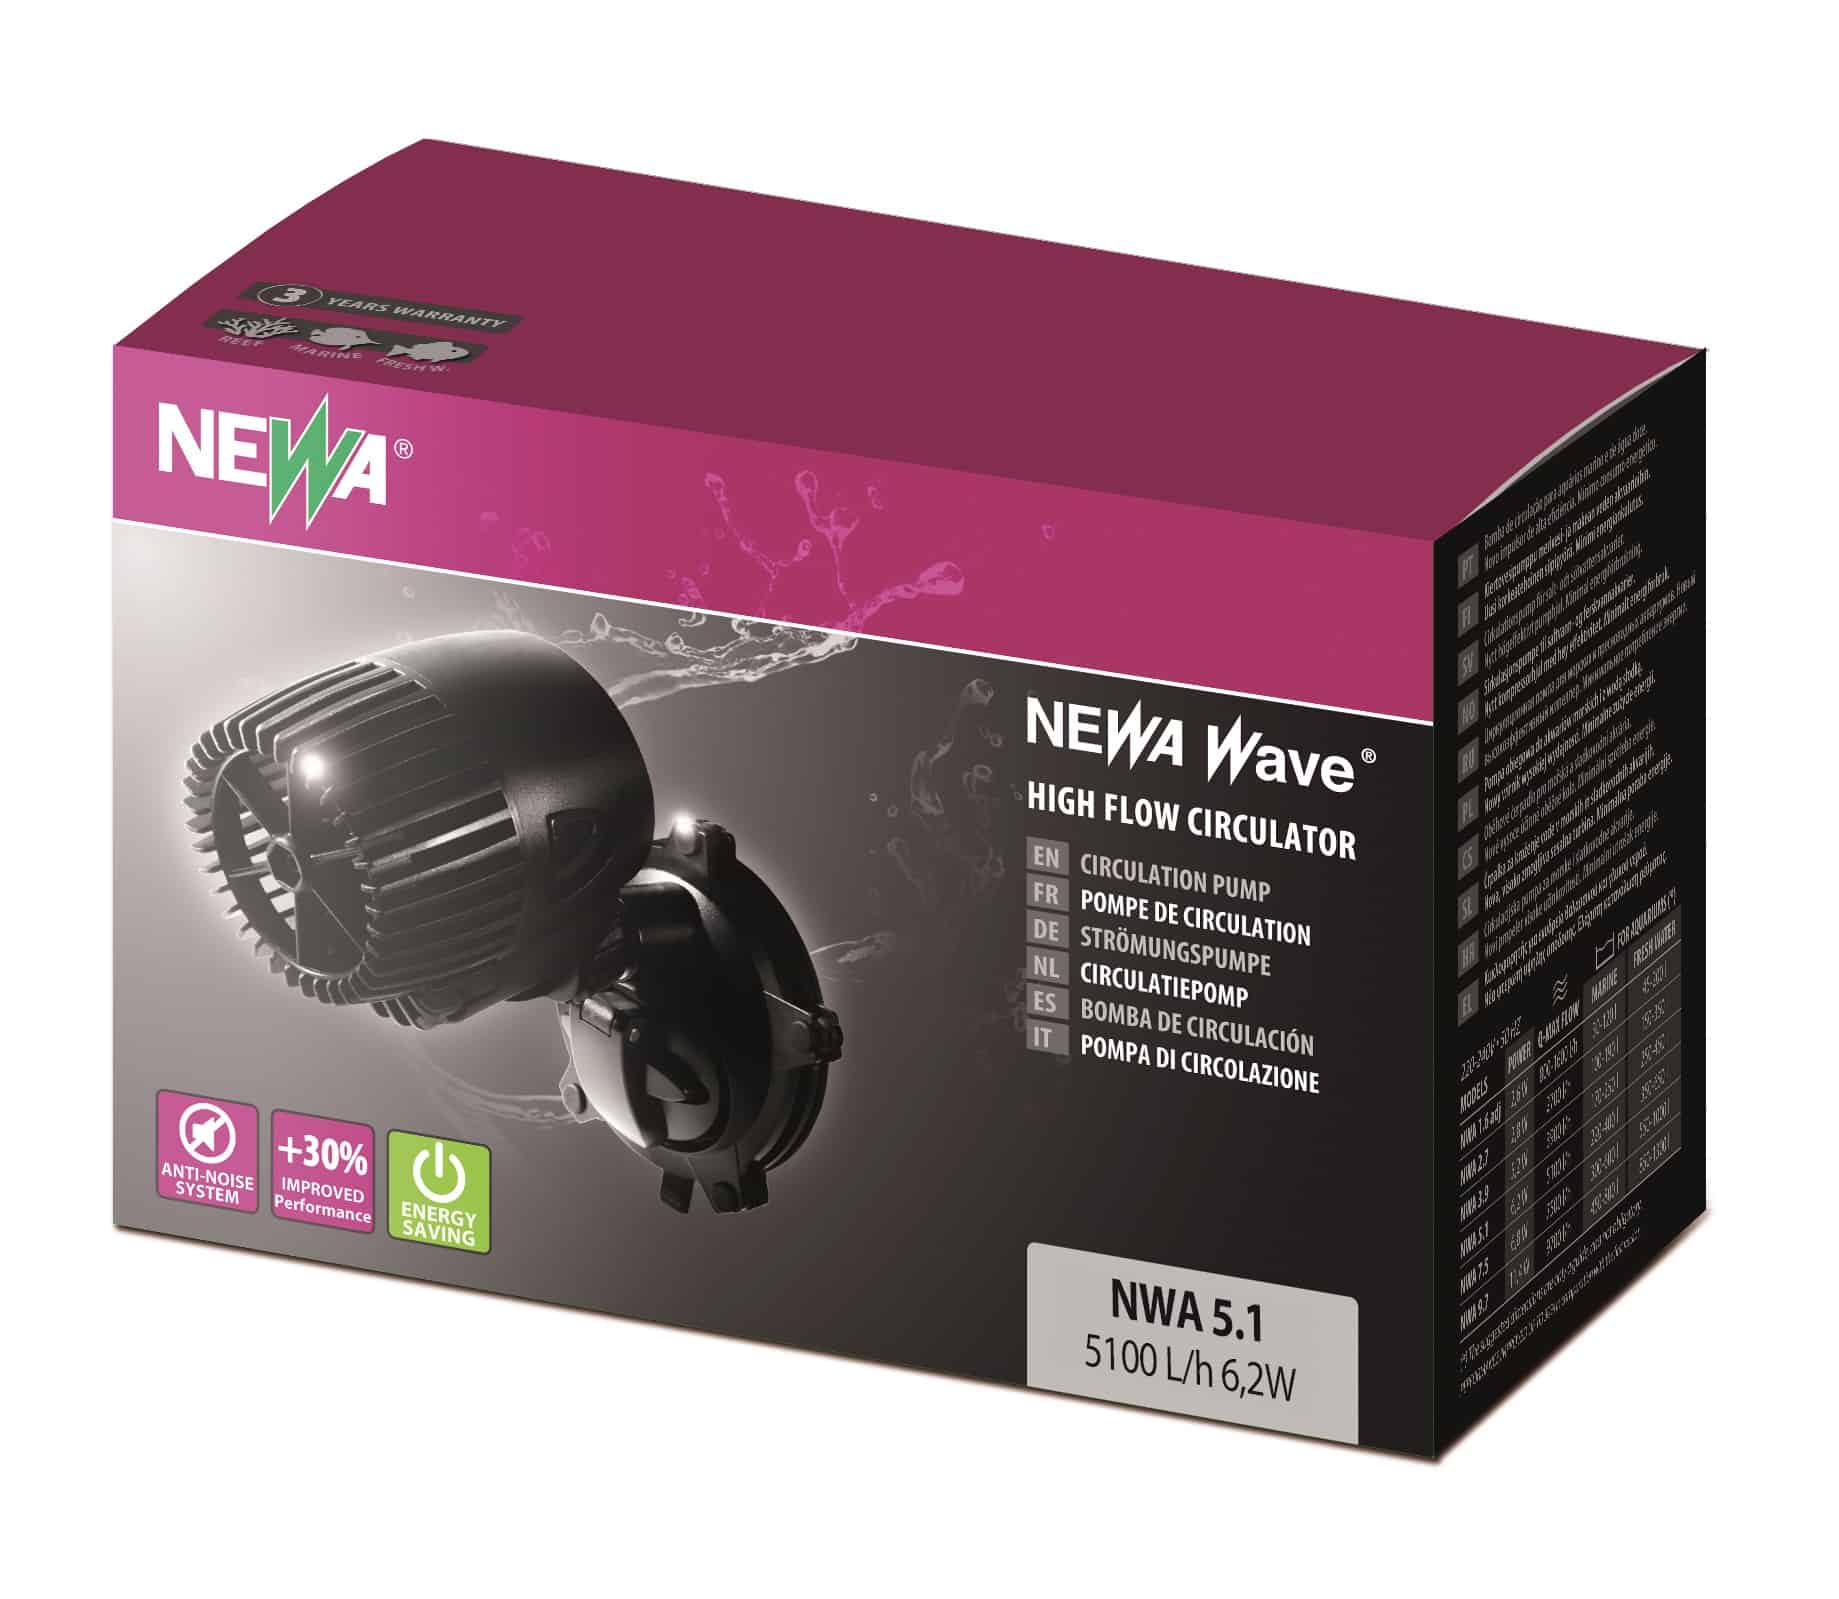 newa-wave-nwa-5-1-pompe-de-brassage-aquarium-min